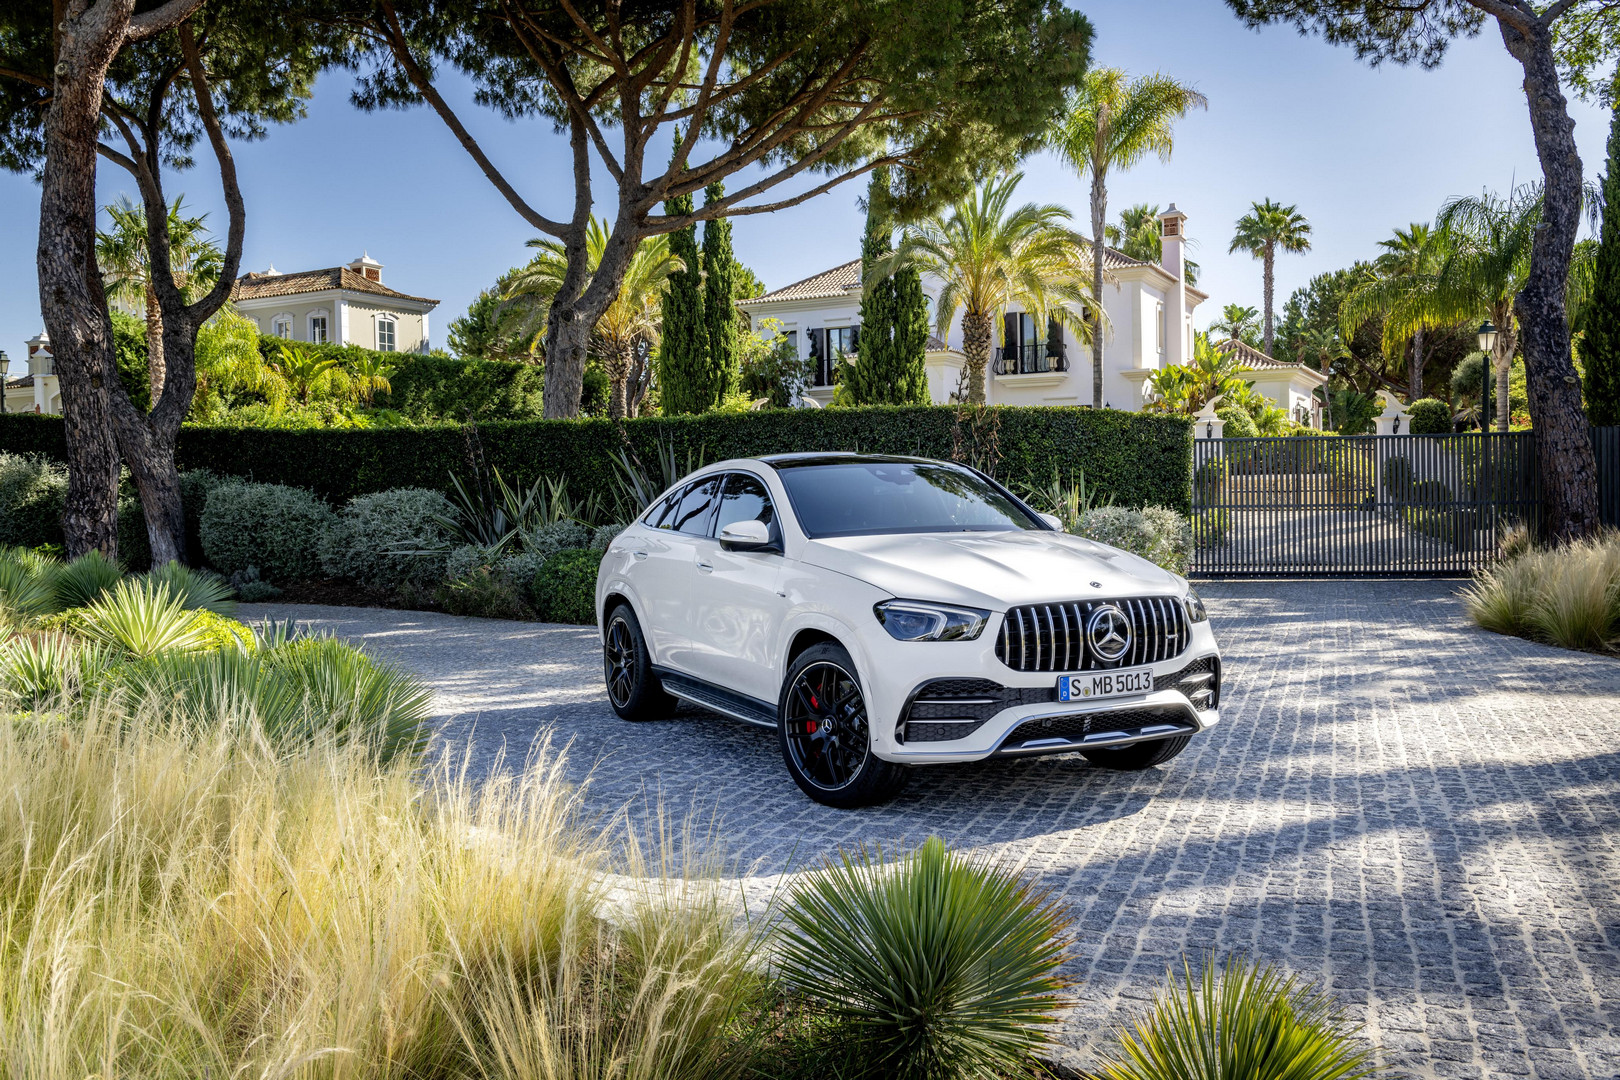 2020 Mercedes-AMG GLE 53 Coupe